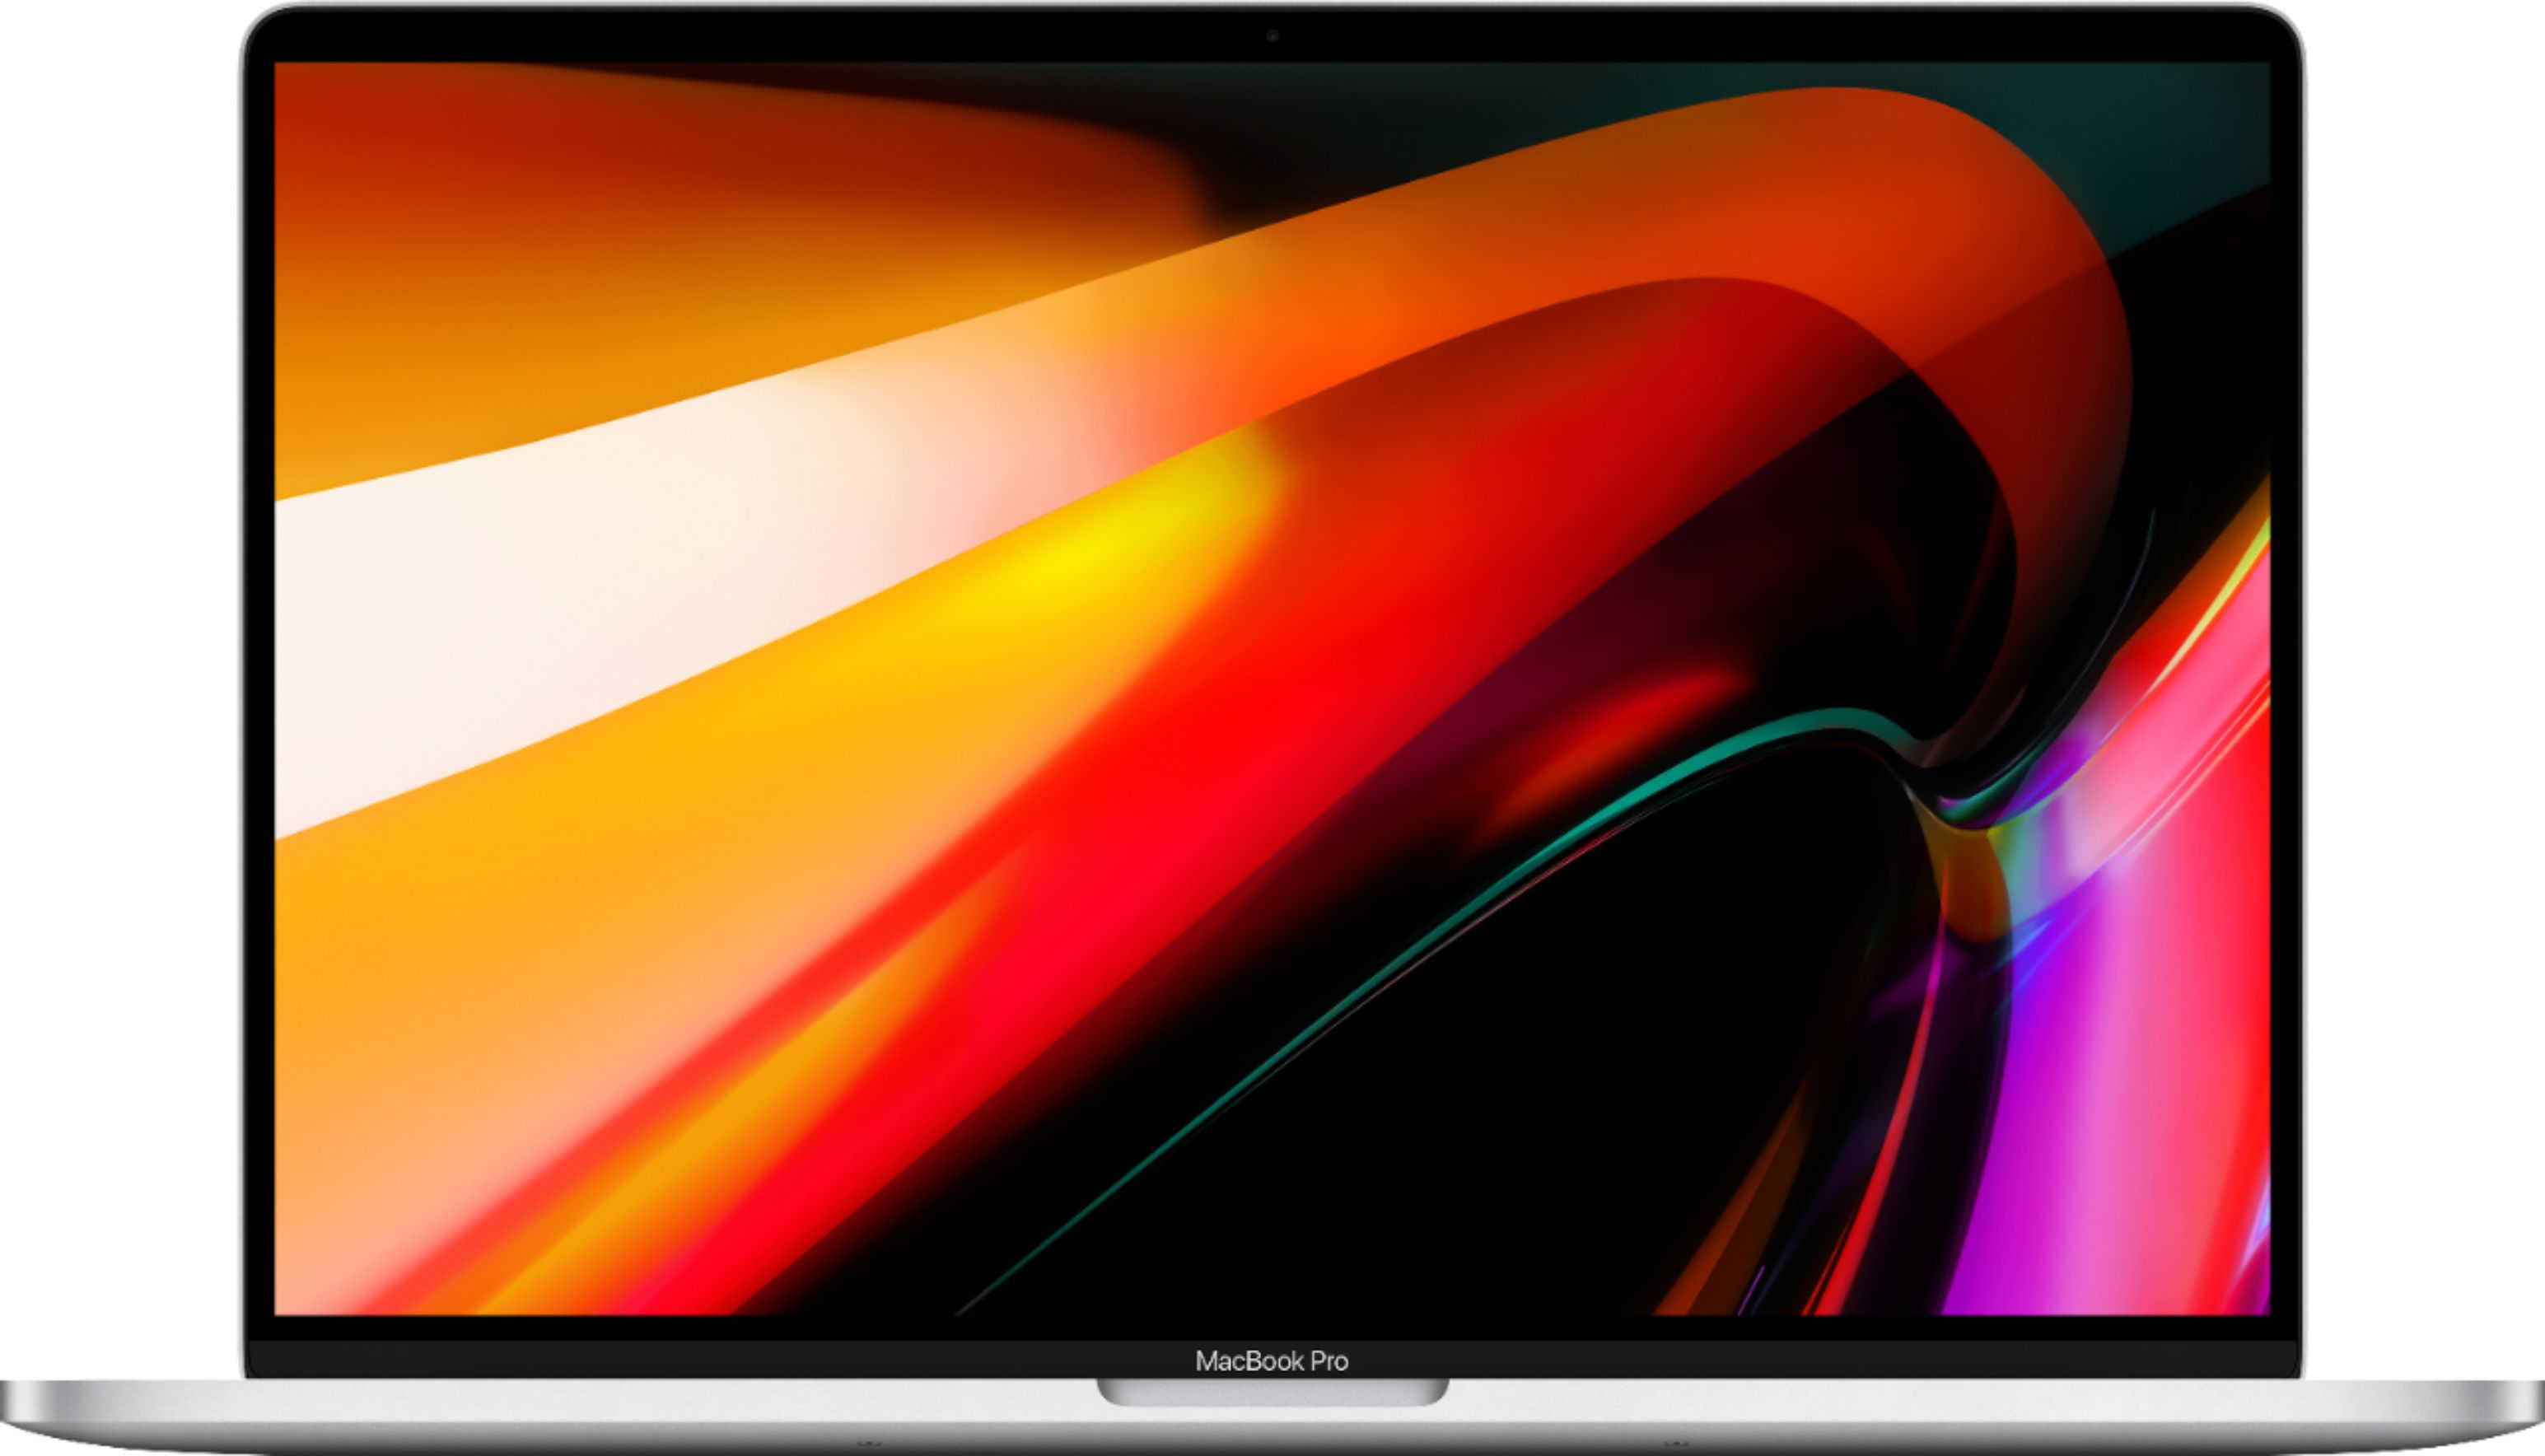 """Front Zoom. Apple - MacBook Pro - 16"""" Display with Touch Bar - Intel Core i7 - 16GB Memory - AMD Radeon Pro 5300M - 512GB SSD (Latest Model) - Silver."""